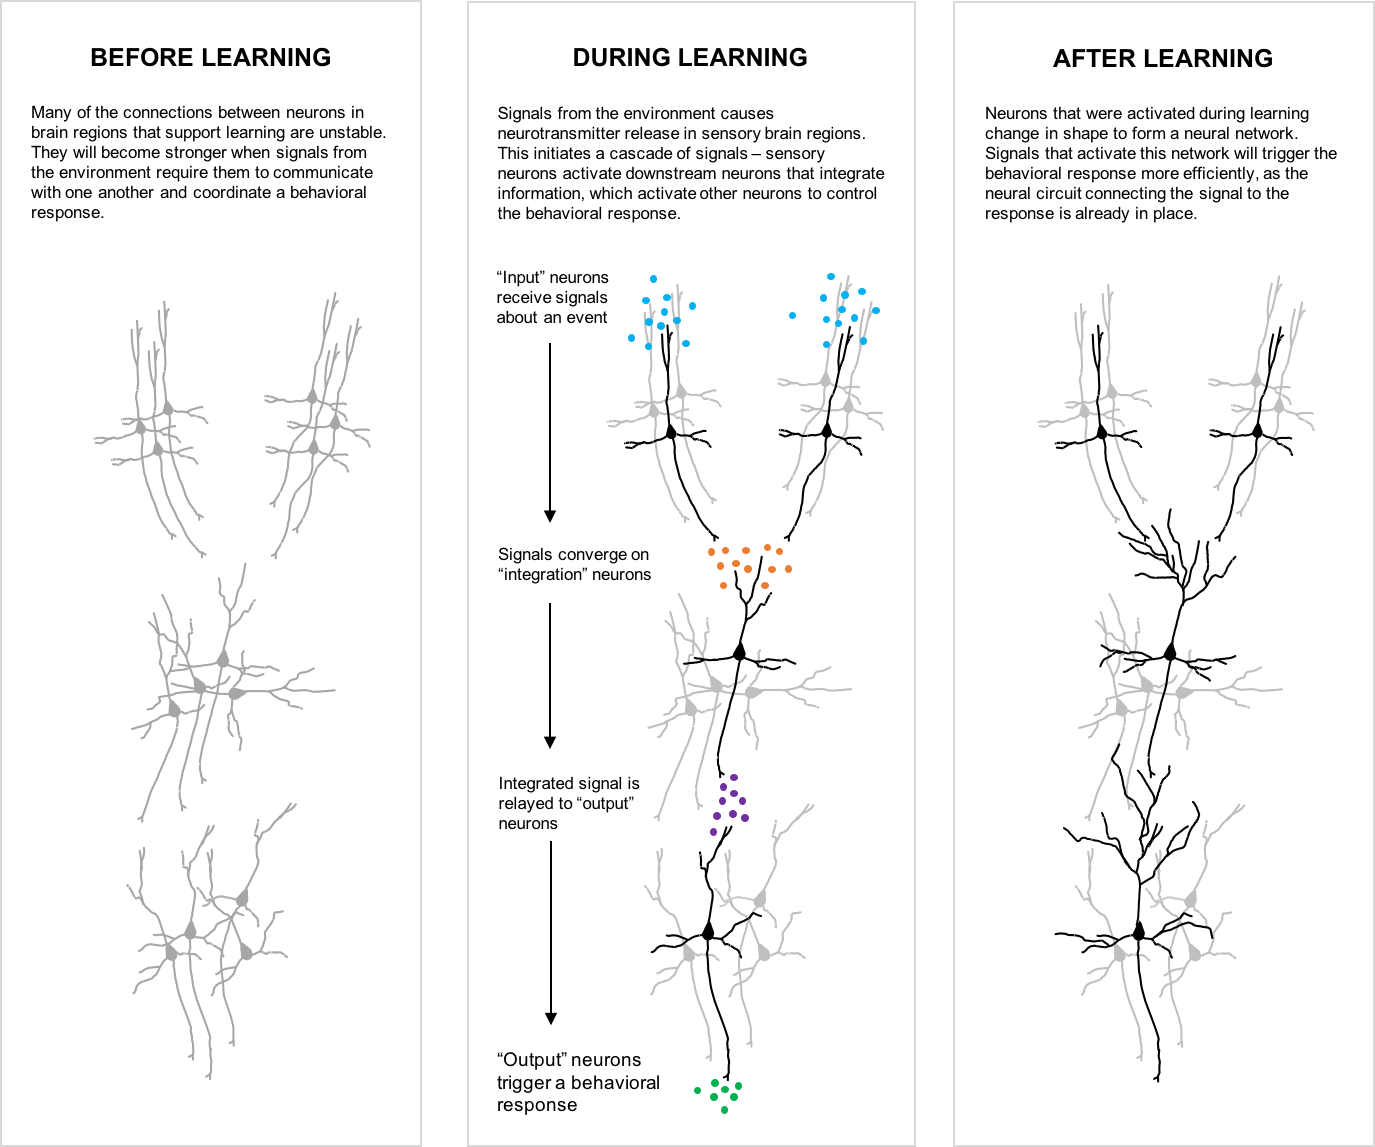 """A figure with three panels, from left to right titled """"Before Learning,"""" """"During Learning,"""" and """"After Learning."""" The first panel, """"Before Learning,"""" reads: """"Many of the connections between neurons in brain regions that support learning are unstable. They will become stronger when signals from the environment require them to communicate with one another and coordinate a behavioral response."""" Underneath the text in that panel, three groups of neurons are shown in grey. The second panel, """"During Learning,"""" reads: Signals from the environment causes neurotransmitter release in sensory brain regions. This initiates a cascade of signals – sensory neurons activate downstream neurons that integrate information, which activate other neurons to control the behavioral response."""" Underneath the text in that panel, the same three groups of neurons are shown, but one neuron in each group is shown in black. Small circles representing neurotransmitters are depicted between each black neuron. A flow diagram displays the following text next to each group of neurotransmitters: """"'Input' neurons receive signals about an event,"""" """"Signals converge on 'integration' neurons,"""" """"Integrated signal is relayed to 'output' neurons,"""" and """"'Output' neurons trigger a behavioral response."""" The third panel, """"After Learning,"""" reads: Neurons that were activated during learning change in shape to form a neural network. Signals that activate this network will trigger the behavioral response more efficiently, as the neural circuit connecting the signal to the response is already in place."""" Underneath the text in that panel, the same black neurons are shown, but have additional projections (dendrites) so that neurons in each group contact those in neighboring groups."""